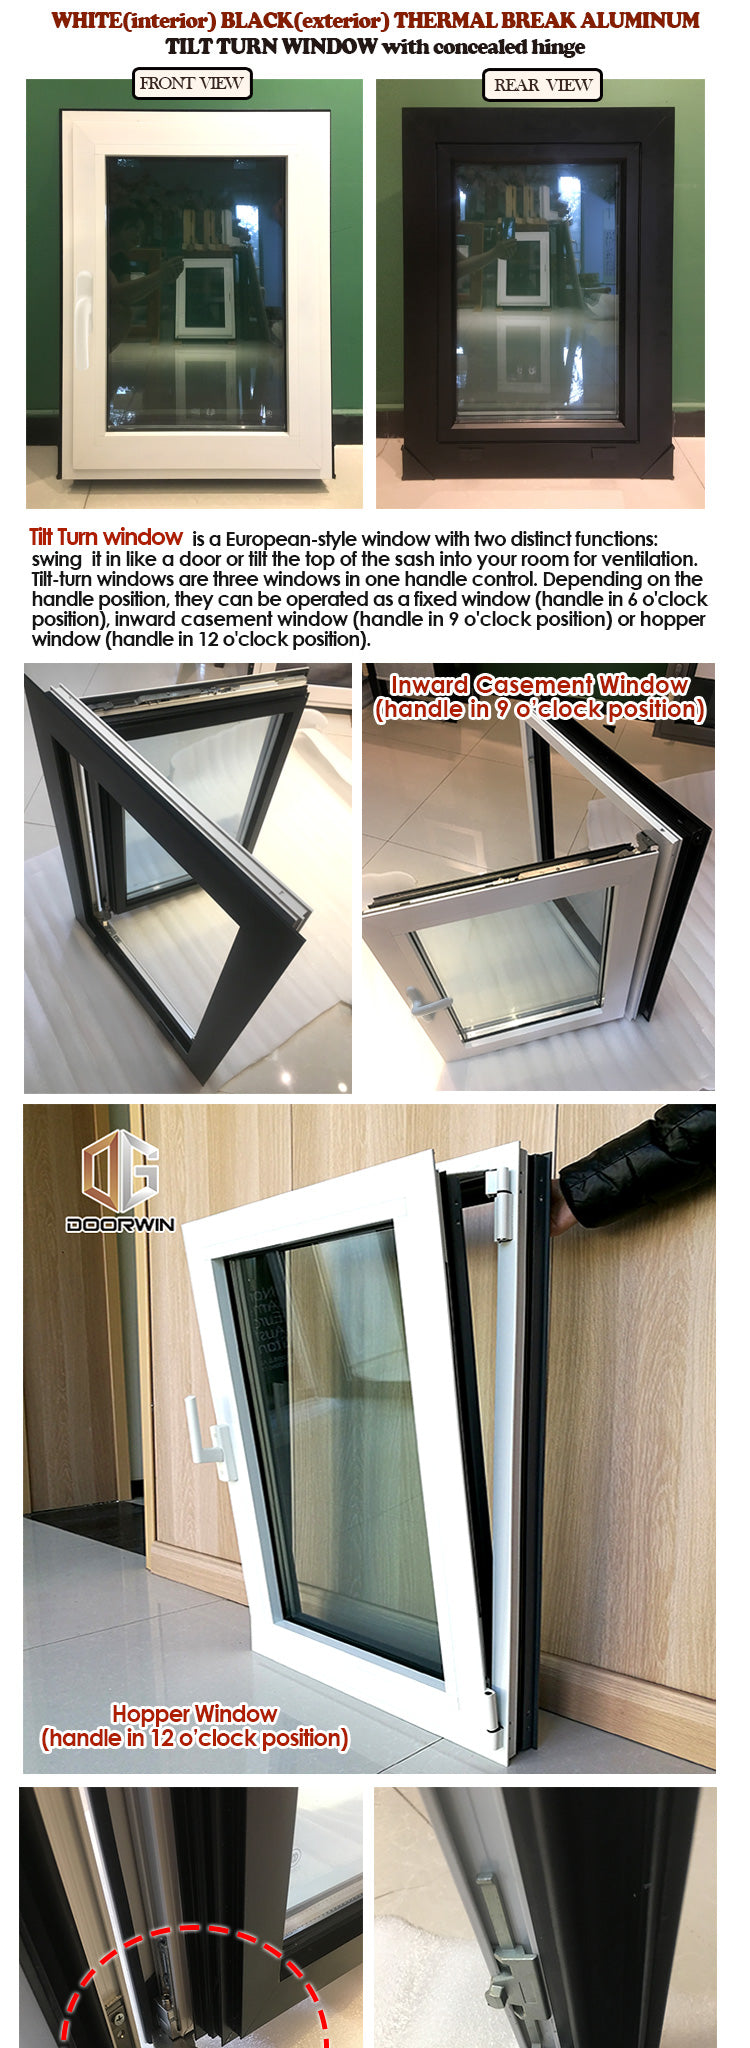 tilt turn window-01-01